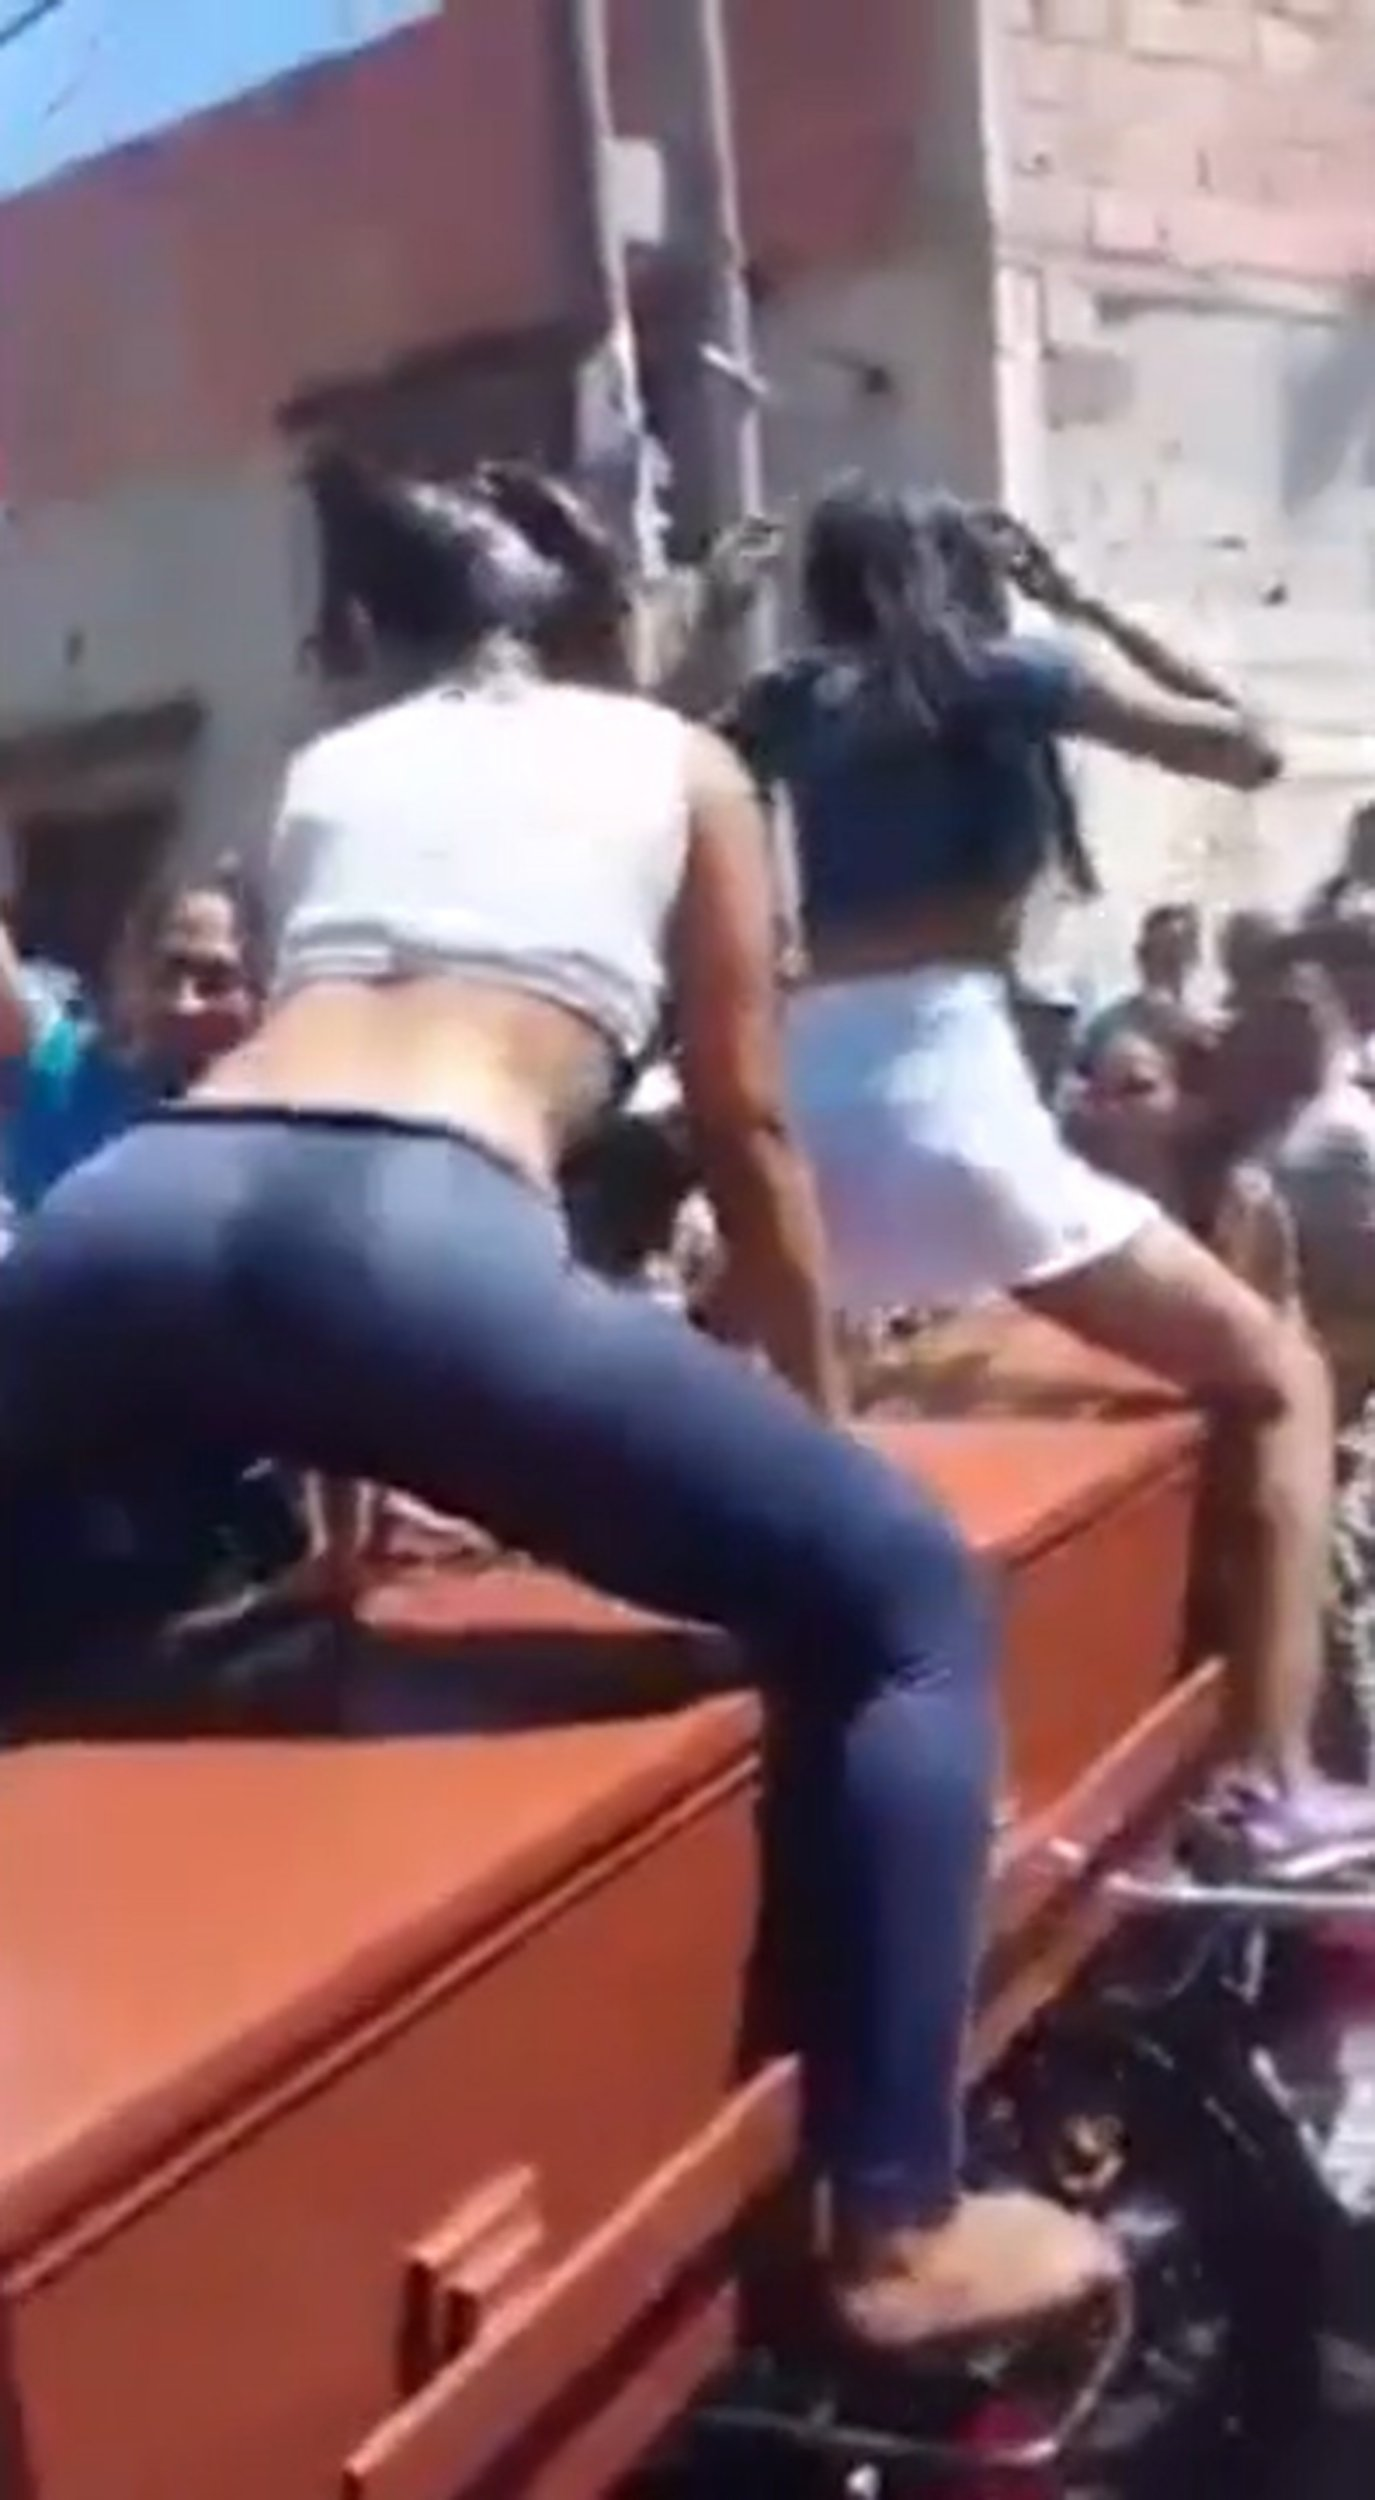 """Pic shows: Another girl joins to dance. Footage of women sexily twerking in wet T-shirts over a coffin have gone viral on social networks in what appears to be a bizarre tribute to their dead friend. The video, posted online on the Facebook page of university student of Memes Universitarios UDC, in the city of Popayan in Colombia has now logged an incredible 19 million hits. The video's origin is unknown although it is thought to have been recorded in Central America or the Caribbean. The video, named """"When Brayan dies"""" shows a brunette woman over a coffin twerking repeatedly while being encouraged by a group of people surrounding the coffin at what appears to be the funeral of Brayan. They can be sleep lifting her skirt up and slapping her bottom. A woman wearing a blue shirt is seen slapping the bottom of the sensual brunette while shouting and she then proceeds to slap the coffin lid. Then another woman is seen getting up over the coffin to also twerk over it. Water is poured over the dancing women, causing their clothes to cling sexily to their bodies. The video went viral on social networks - and caused outrage among viewers. Many criticised what they perceived as a lack of respect for the dead. One man, ëRicky Urgelí, said; """"I cannot believe it, it is the most cynical thing that I have ever seen. It is inhuman, disgusting and it shows a lack of respect"""". Netizen ëPatricia Andrea Cortes Molinaí wrote: """"What a pity seeing girls who could be my daughters moving like bÖ Better not to say what kind of values they have received as they only show the lack of respect by themselves."""" (ends)"""